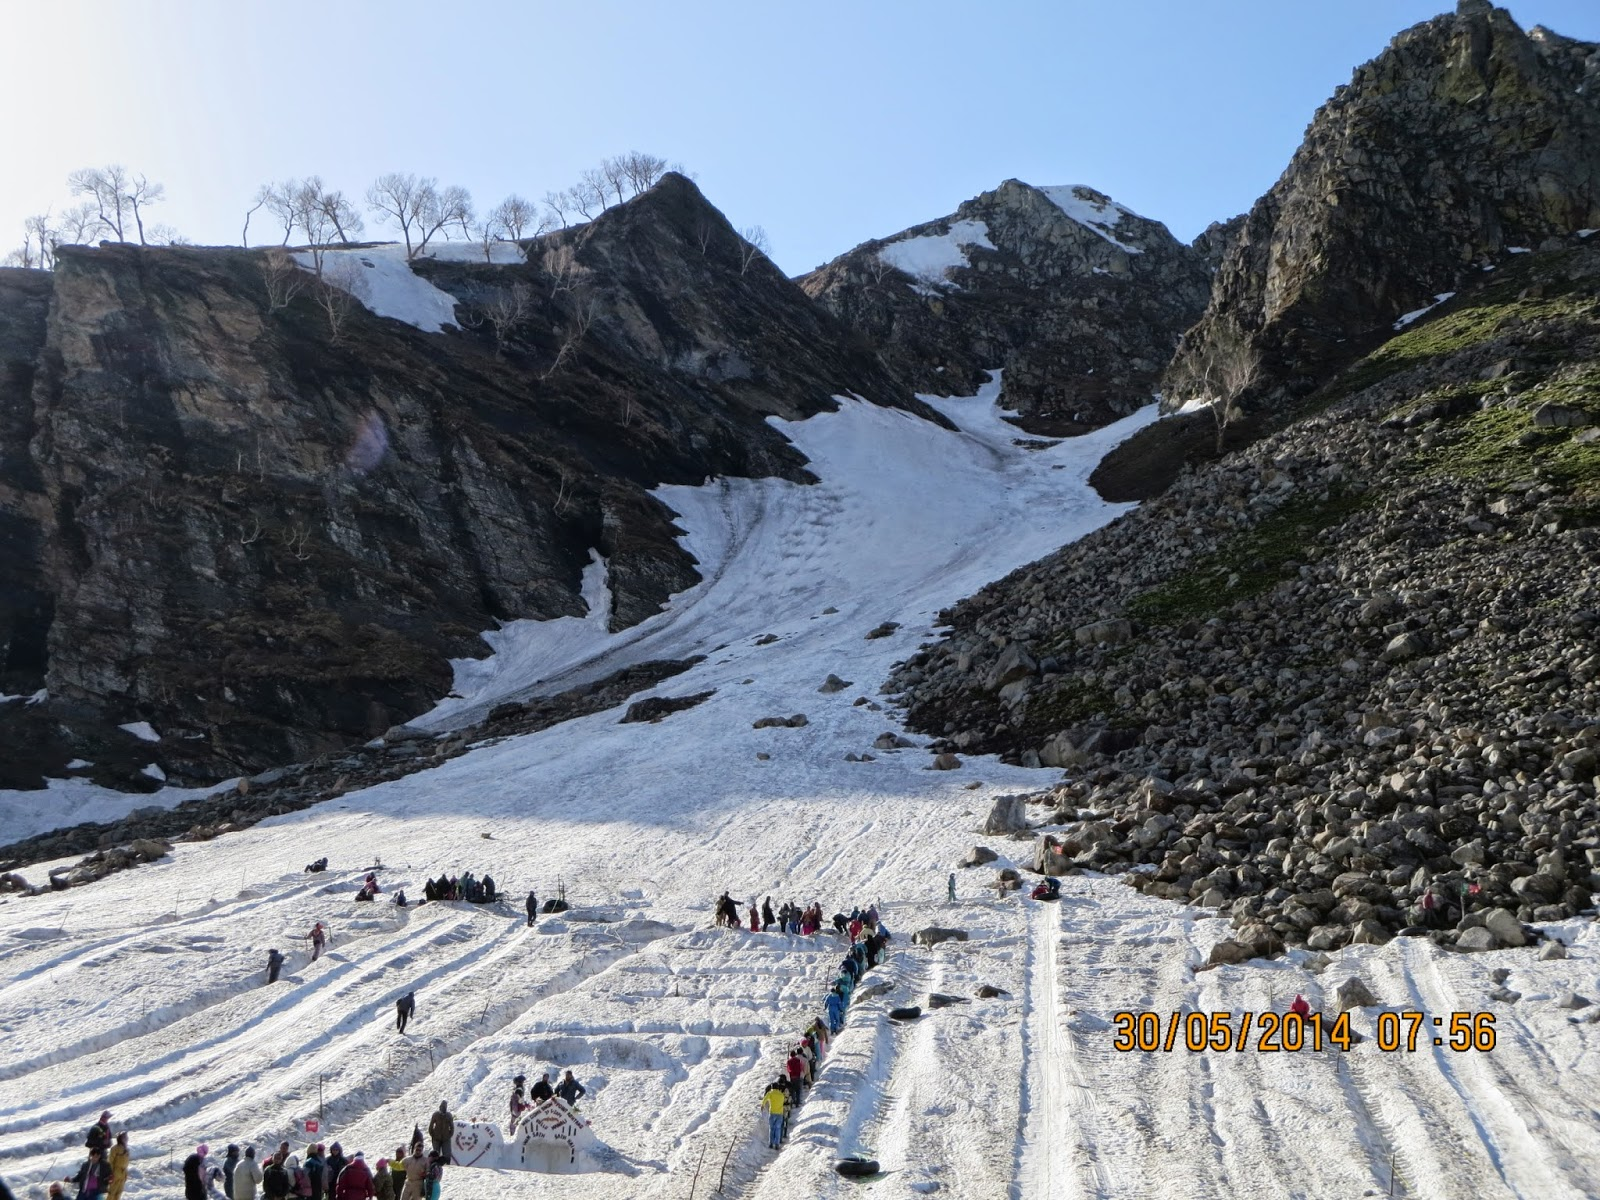 Manali - Ski slope at Rohtang Pass